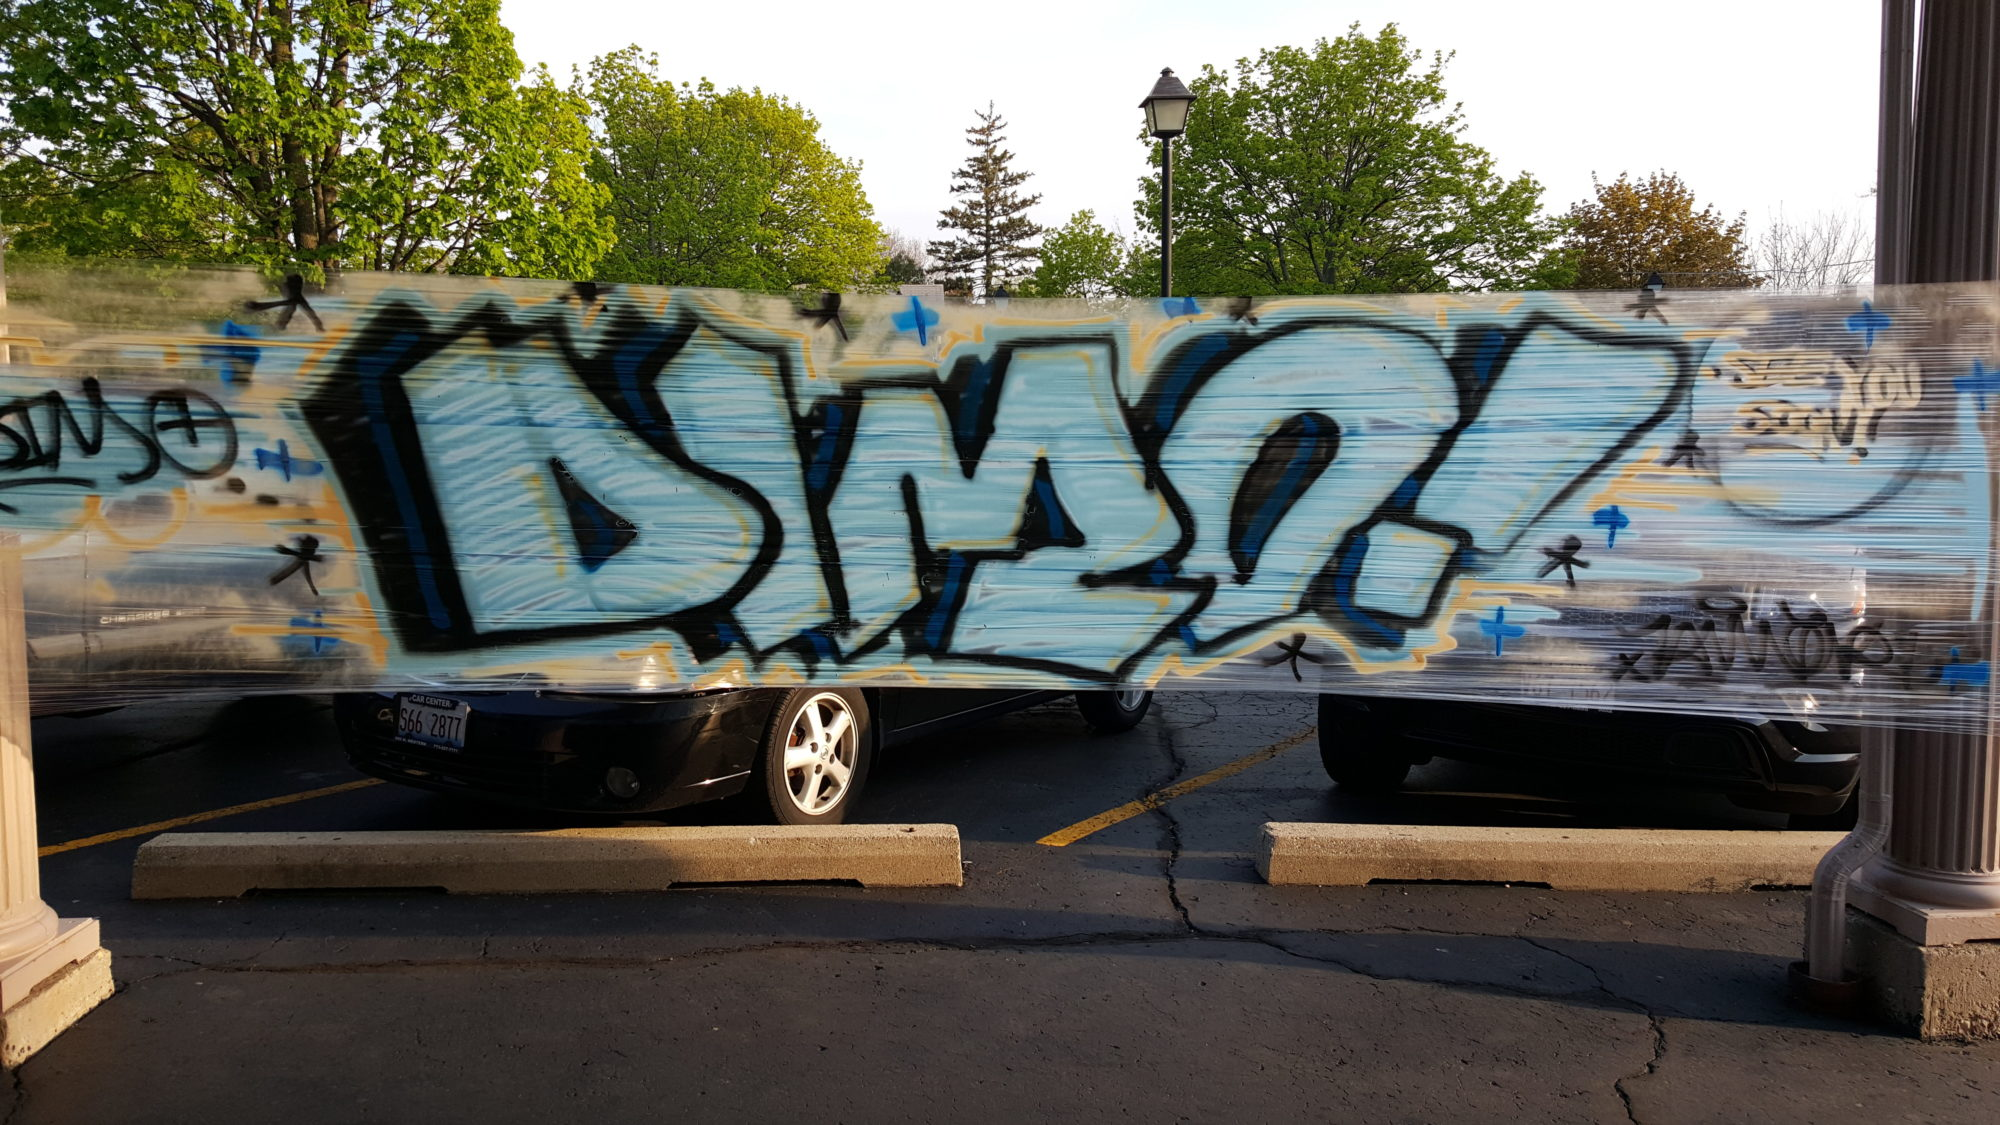 Dimo mural